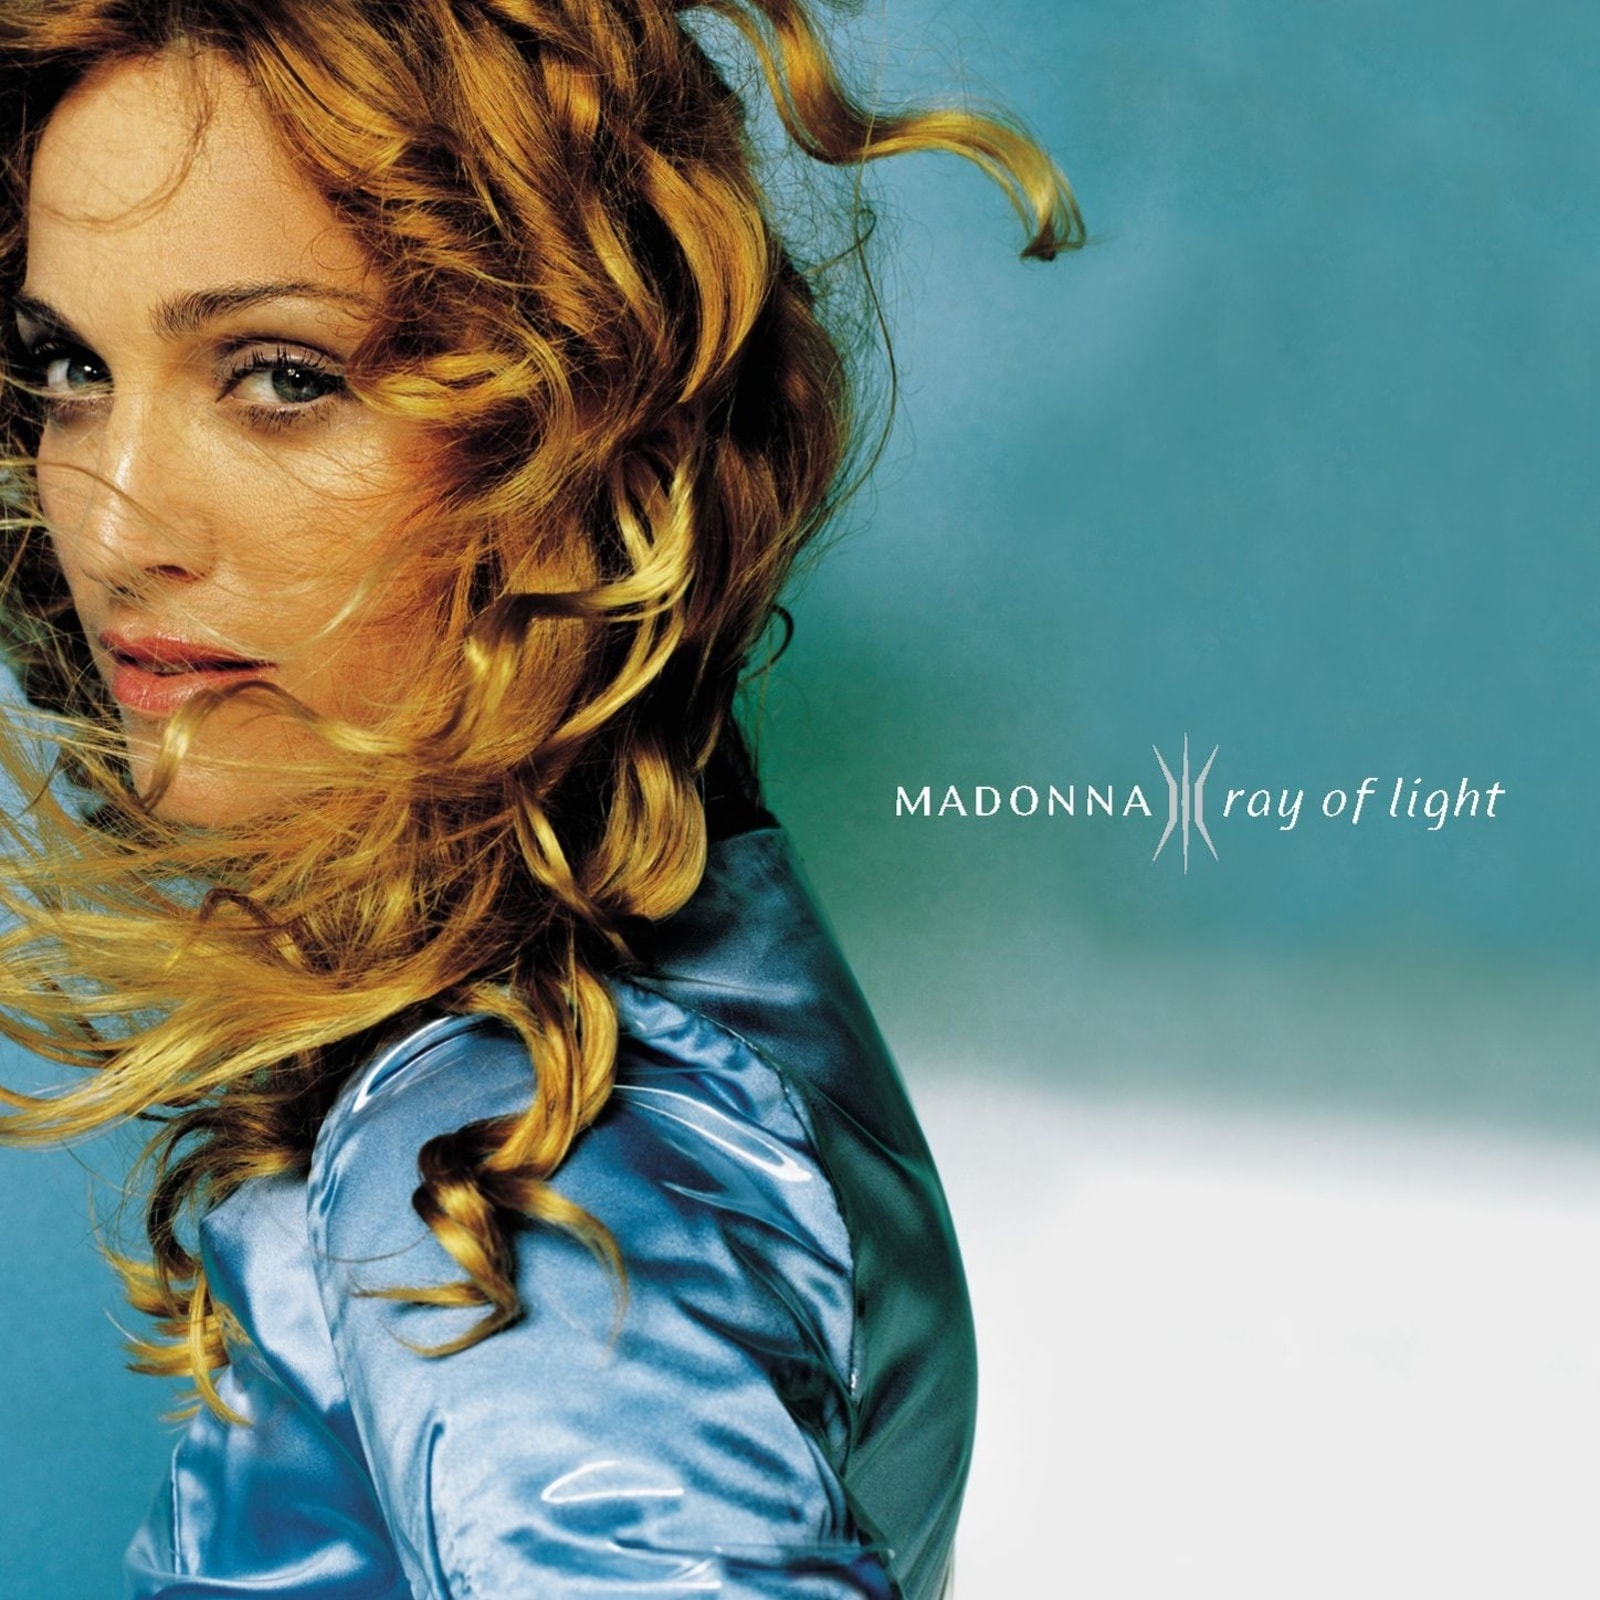 Madonna image album Ray of Light